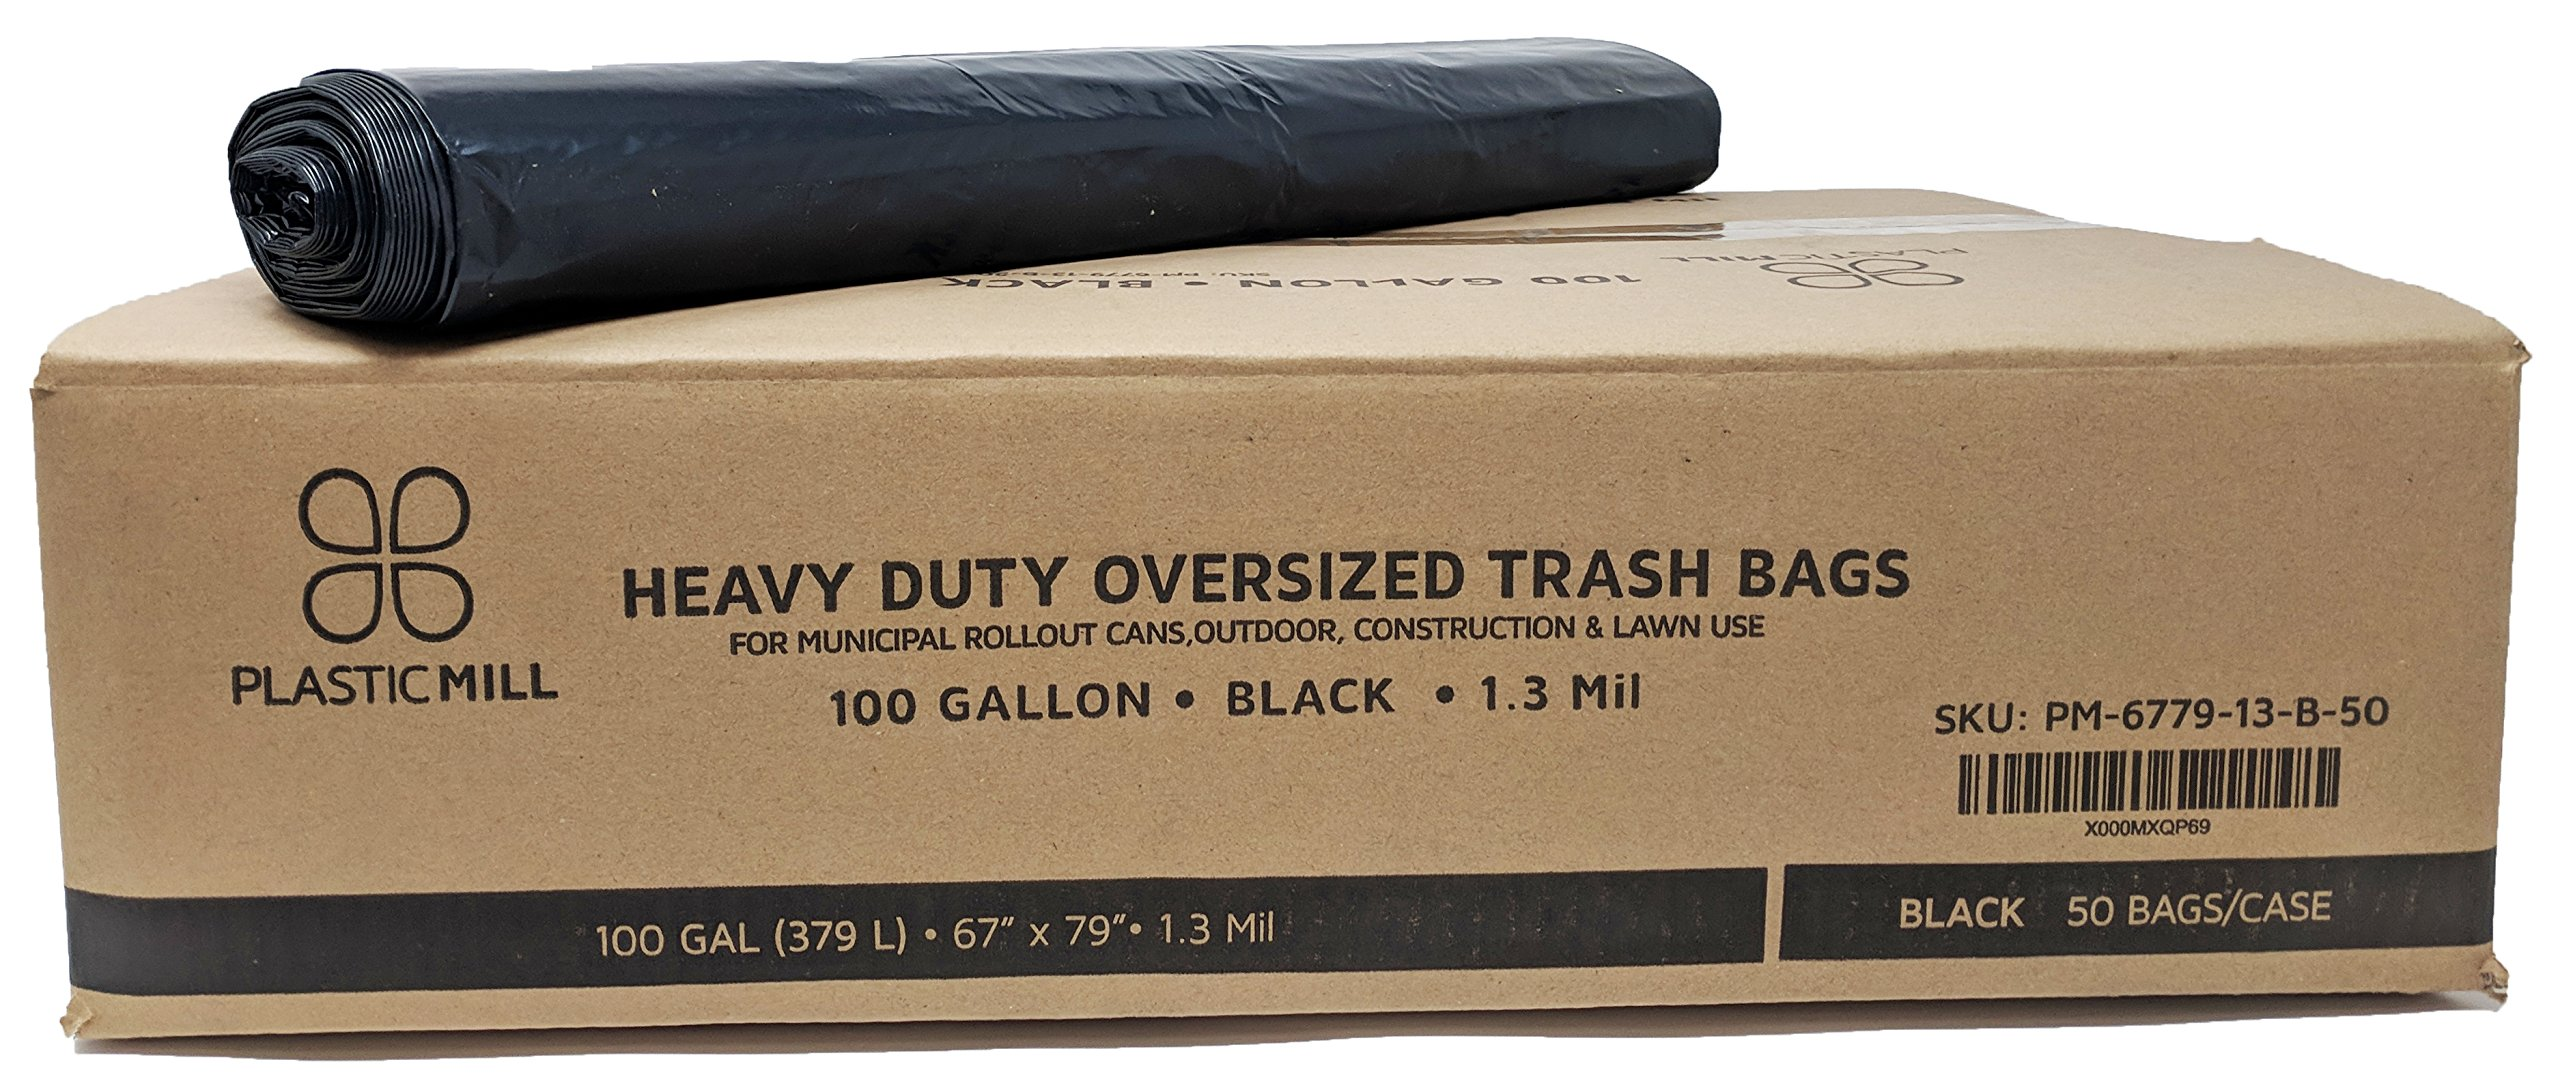 PlasticMill 100 Gallon, Black, 1.3 Mil, 67x79, 50 Bags/Case, Garbage Bags/Trash Can Liners.